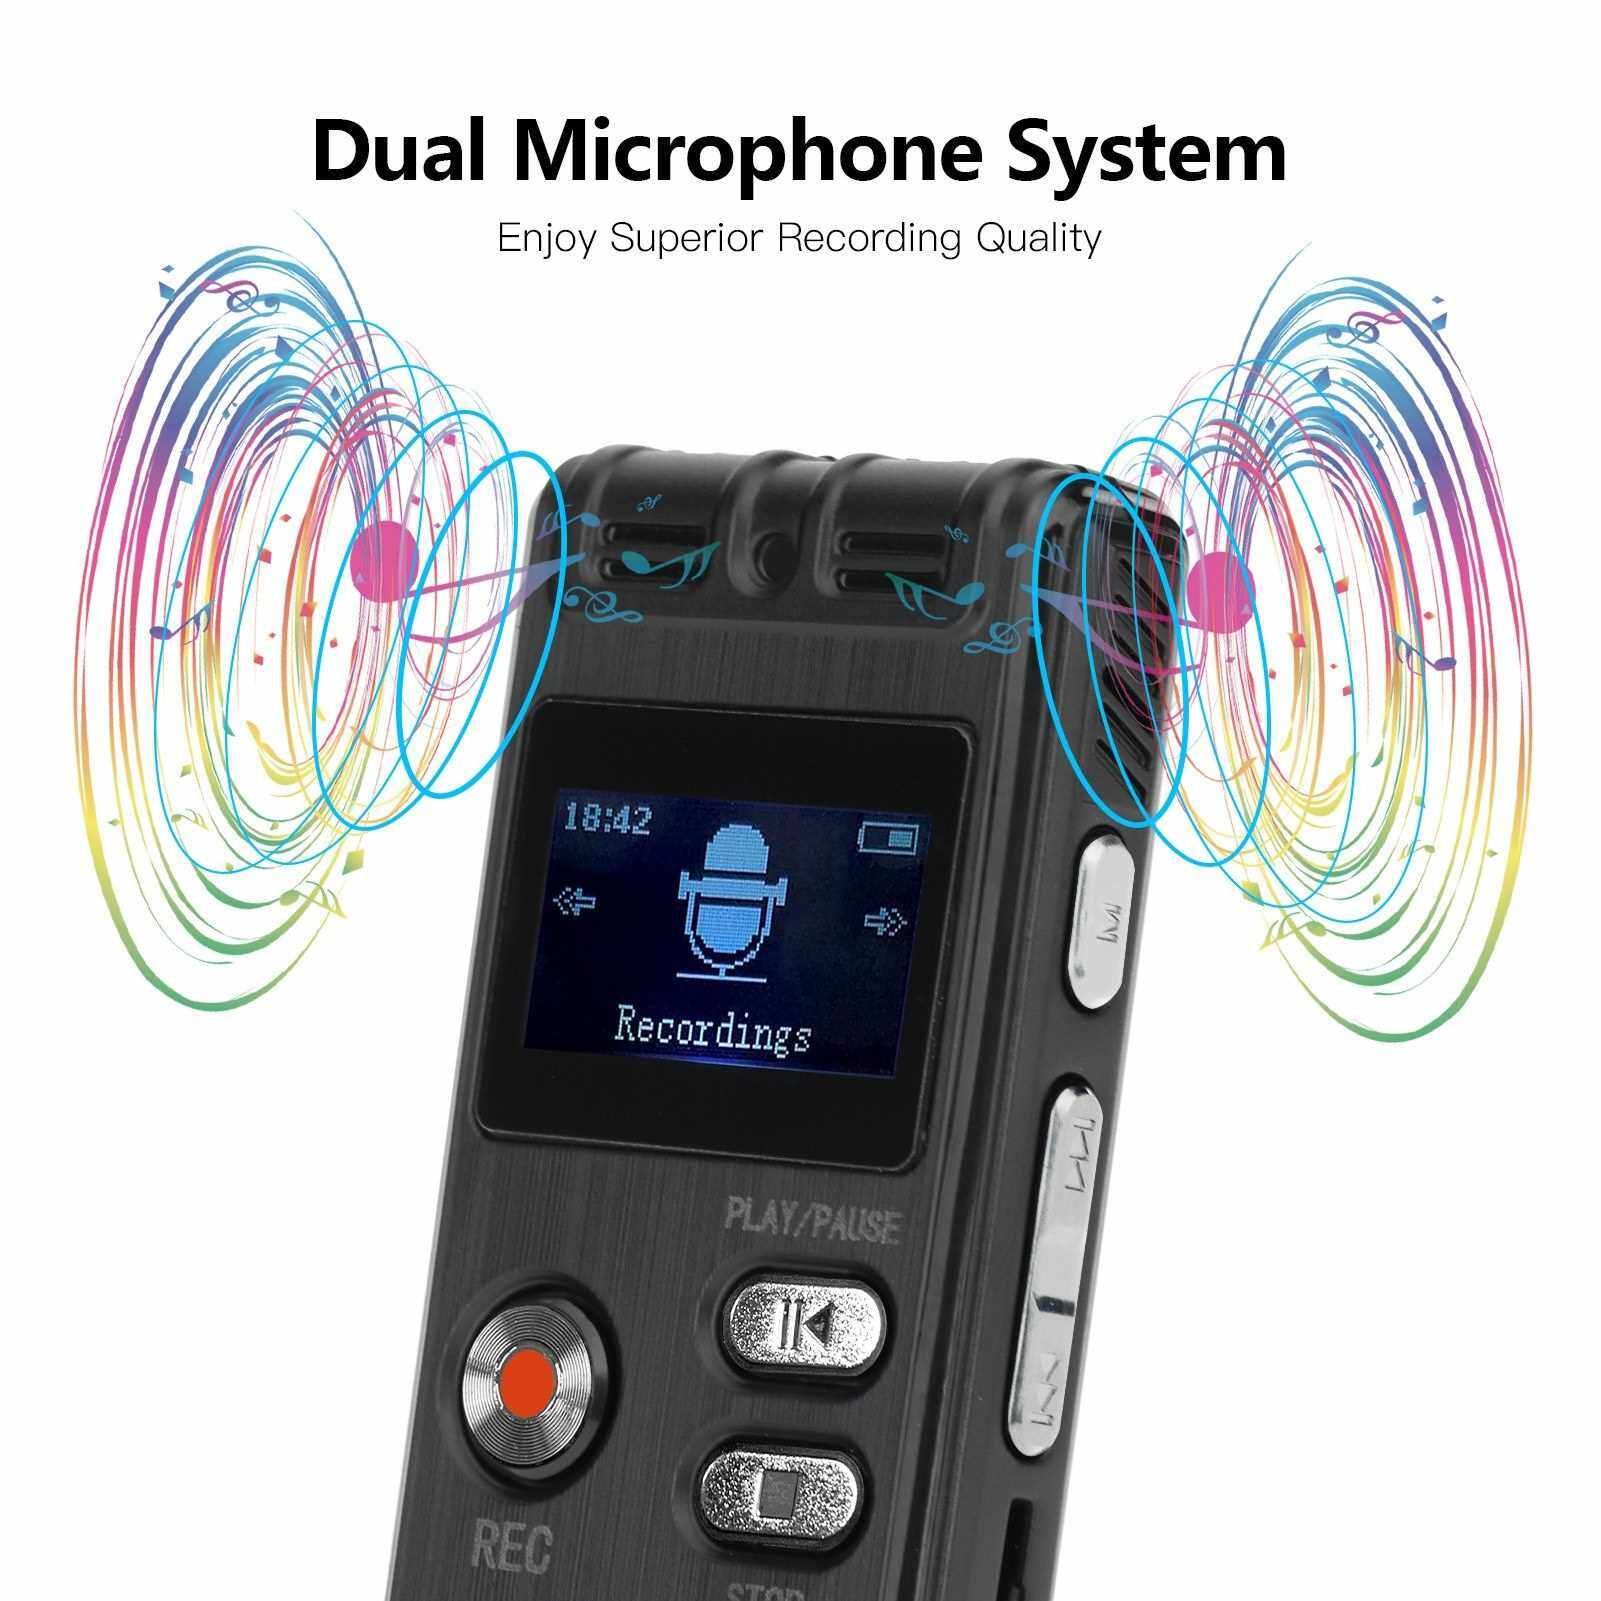 8GB Digital Voice Recorder Voice Activated Recorder MP3 Player 1536Kbps HD Recording Noise Reduction Dual Microphone with OTG Function 8GB Capacity 24 Languages Support Recording Monitoring/Telephone Recording for Meeting Lecture Interview Class (Standar